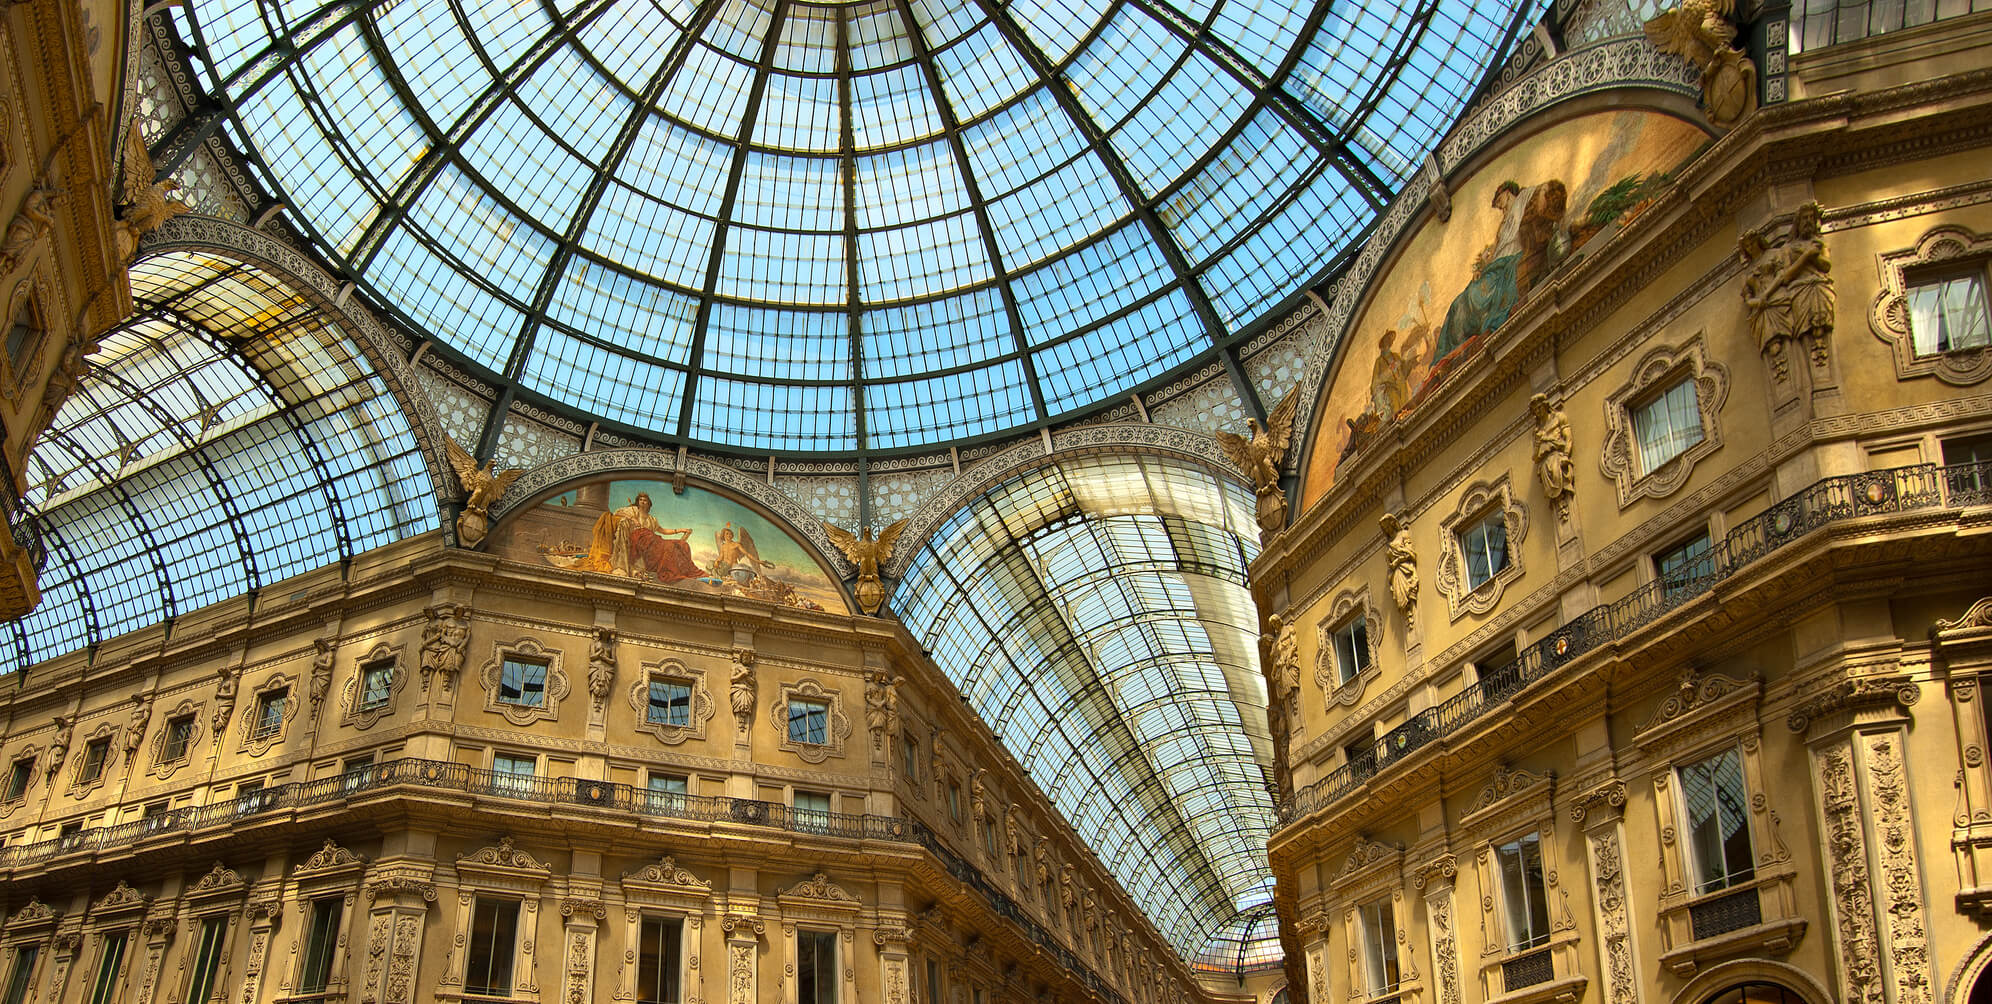 Toronto, Canada to Milan, Italy for only $666 CAD roundtrip (Oct-Mar dates)